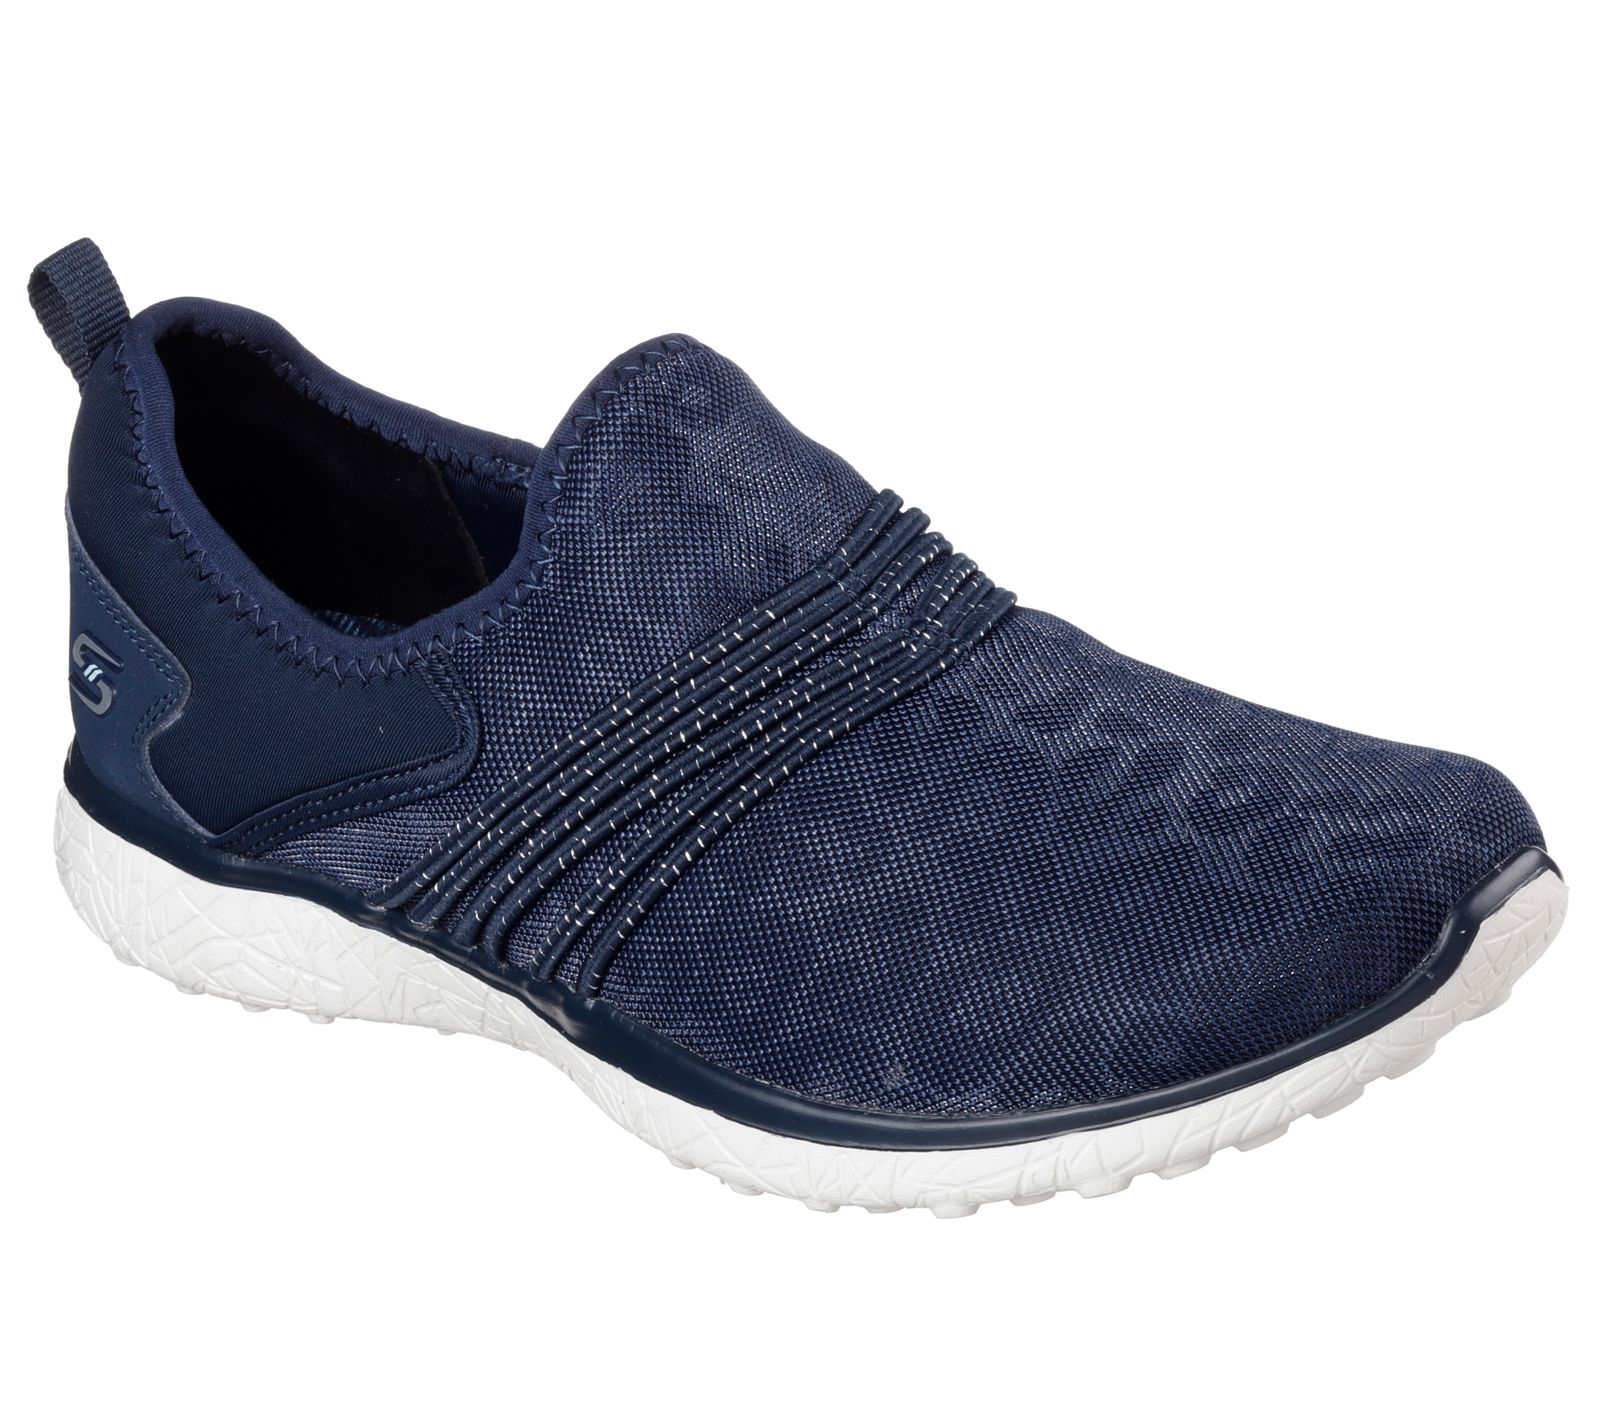 Skechers Microburst under wraps für Damen (blau / 37) qJE4W